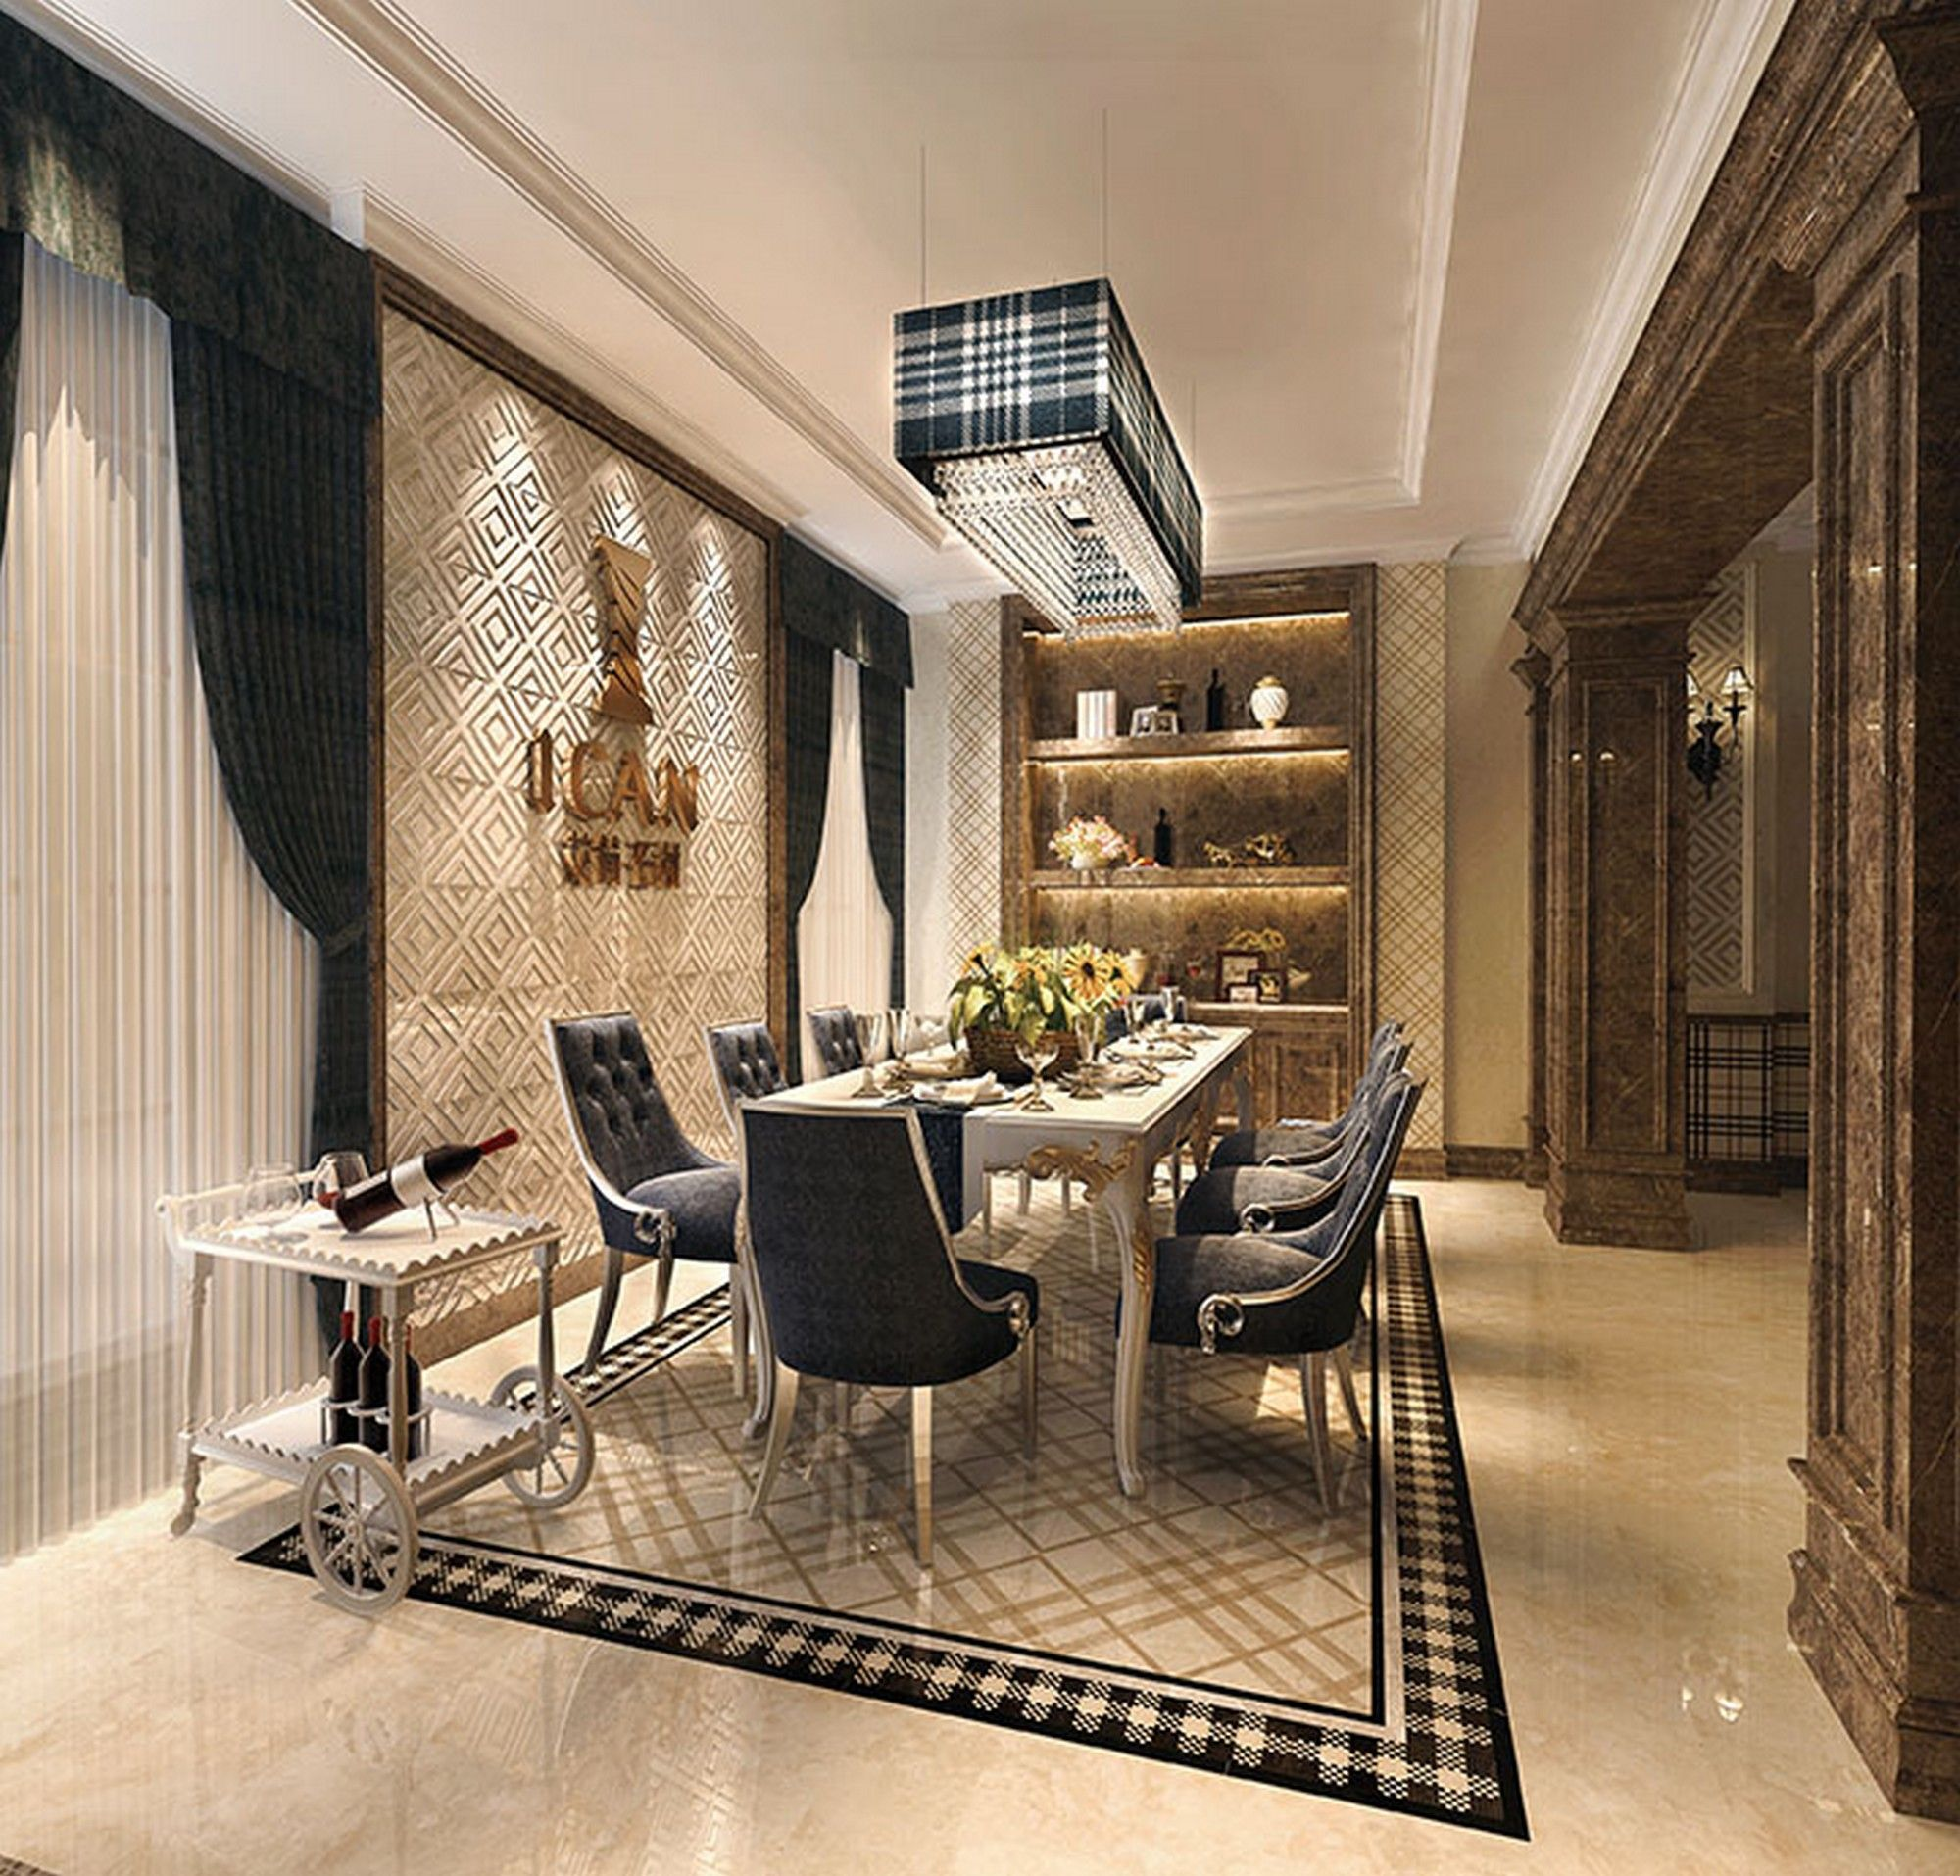 Marble Floor  Google Search  Home  Pinterest  Marble Floor And Inspiration Living Room Marble Floor Inspiration